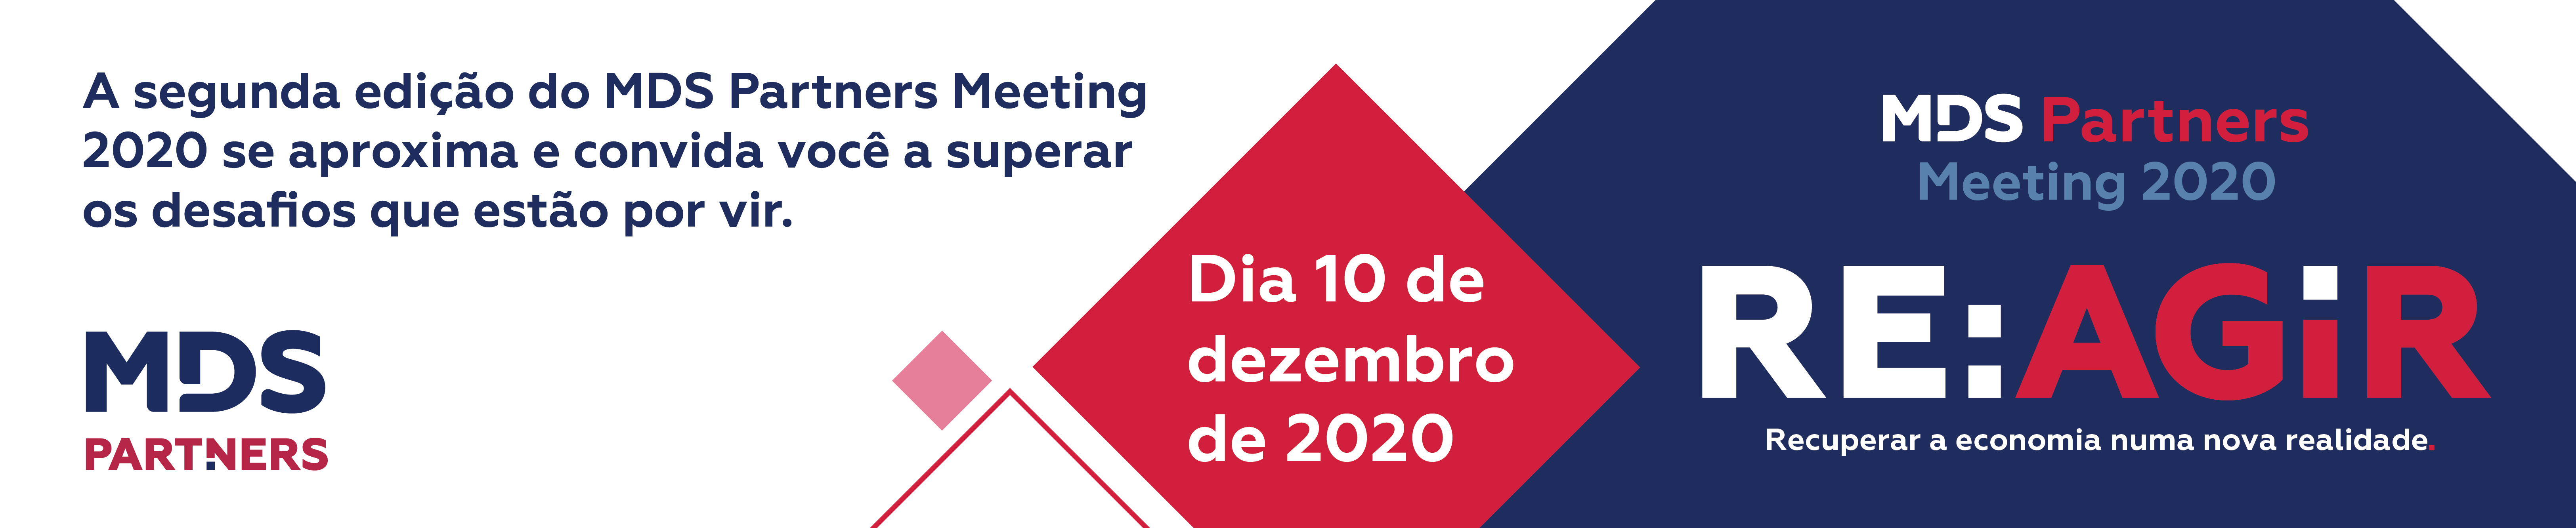 MDS PARTNERS MEETING 2020